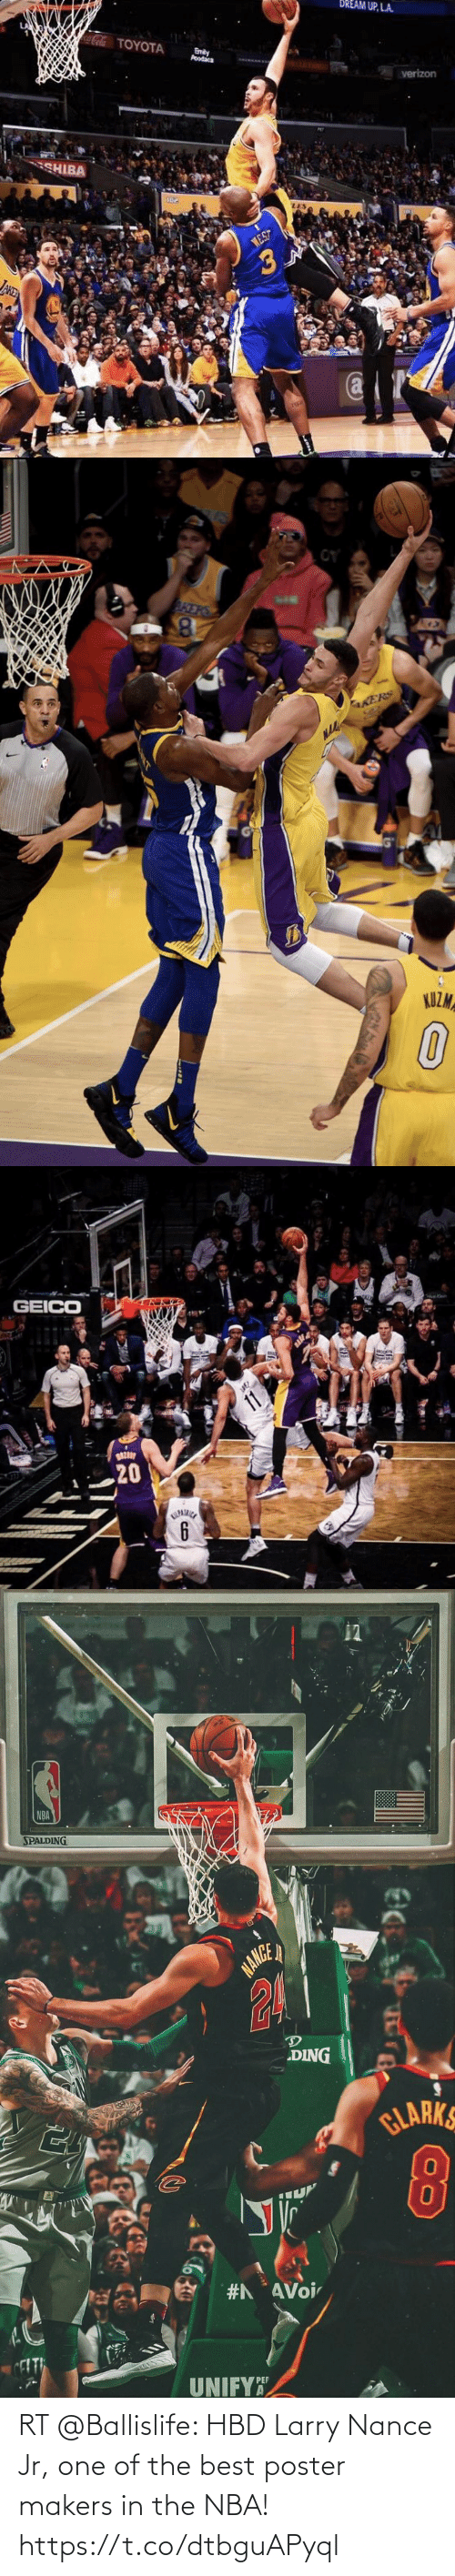 "Akers: DREAM UP, LA.  aTOYOTA  Enty  Poodaca  AELLA  verizon  CHIBA  NEST  JANE  (a   AKERS  AKERS  NAA  KUZMA   GEICO  BAK  HOON  11  20   NBA  SPALDING  NANGE  DING  GLARKS  #AAVoi  UNIFY""  PEP RT @Ballislife: HBD Larry Nance Jr, one of the best poster makers in the NBA! https://t.co/dtbguAPyql"